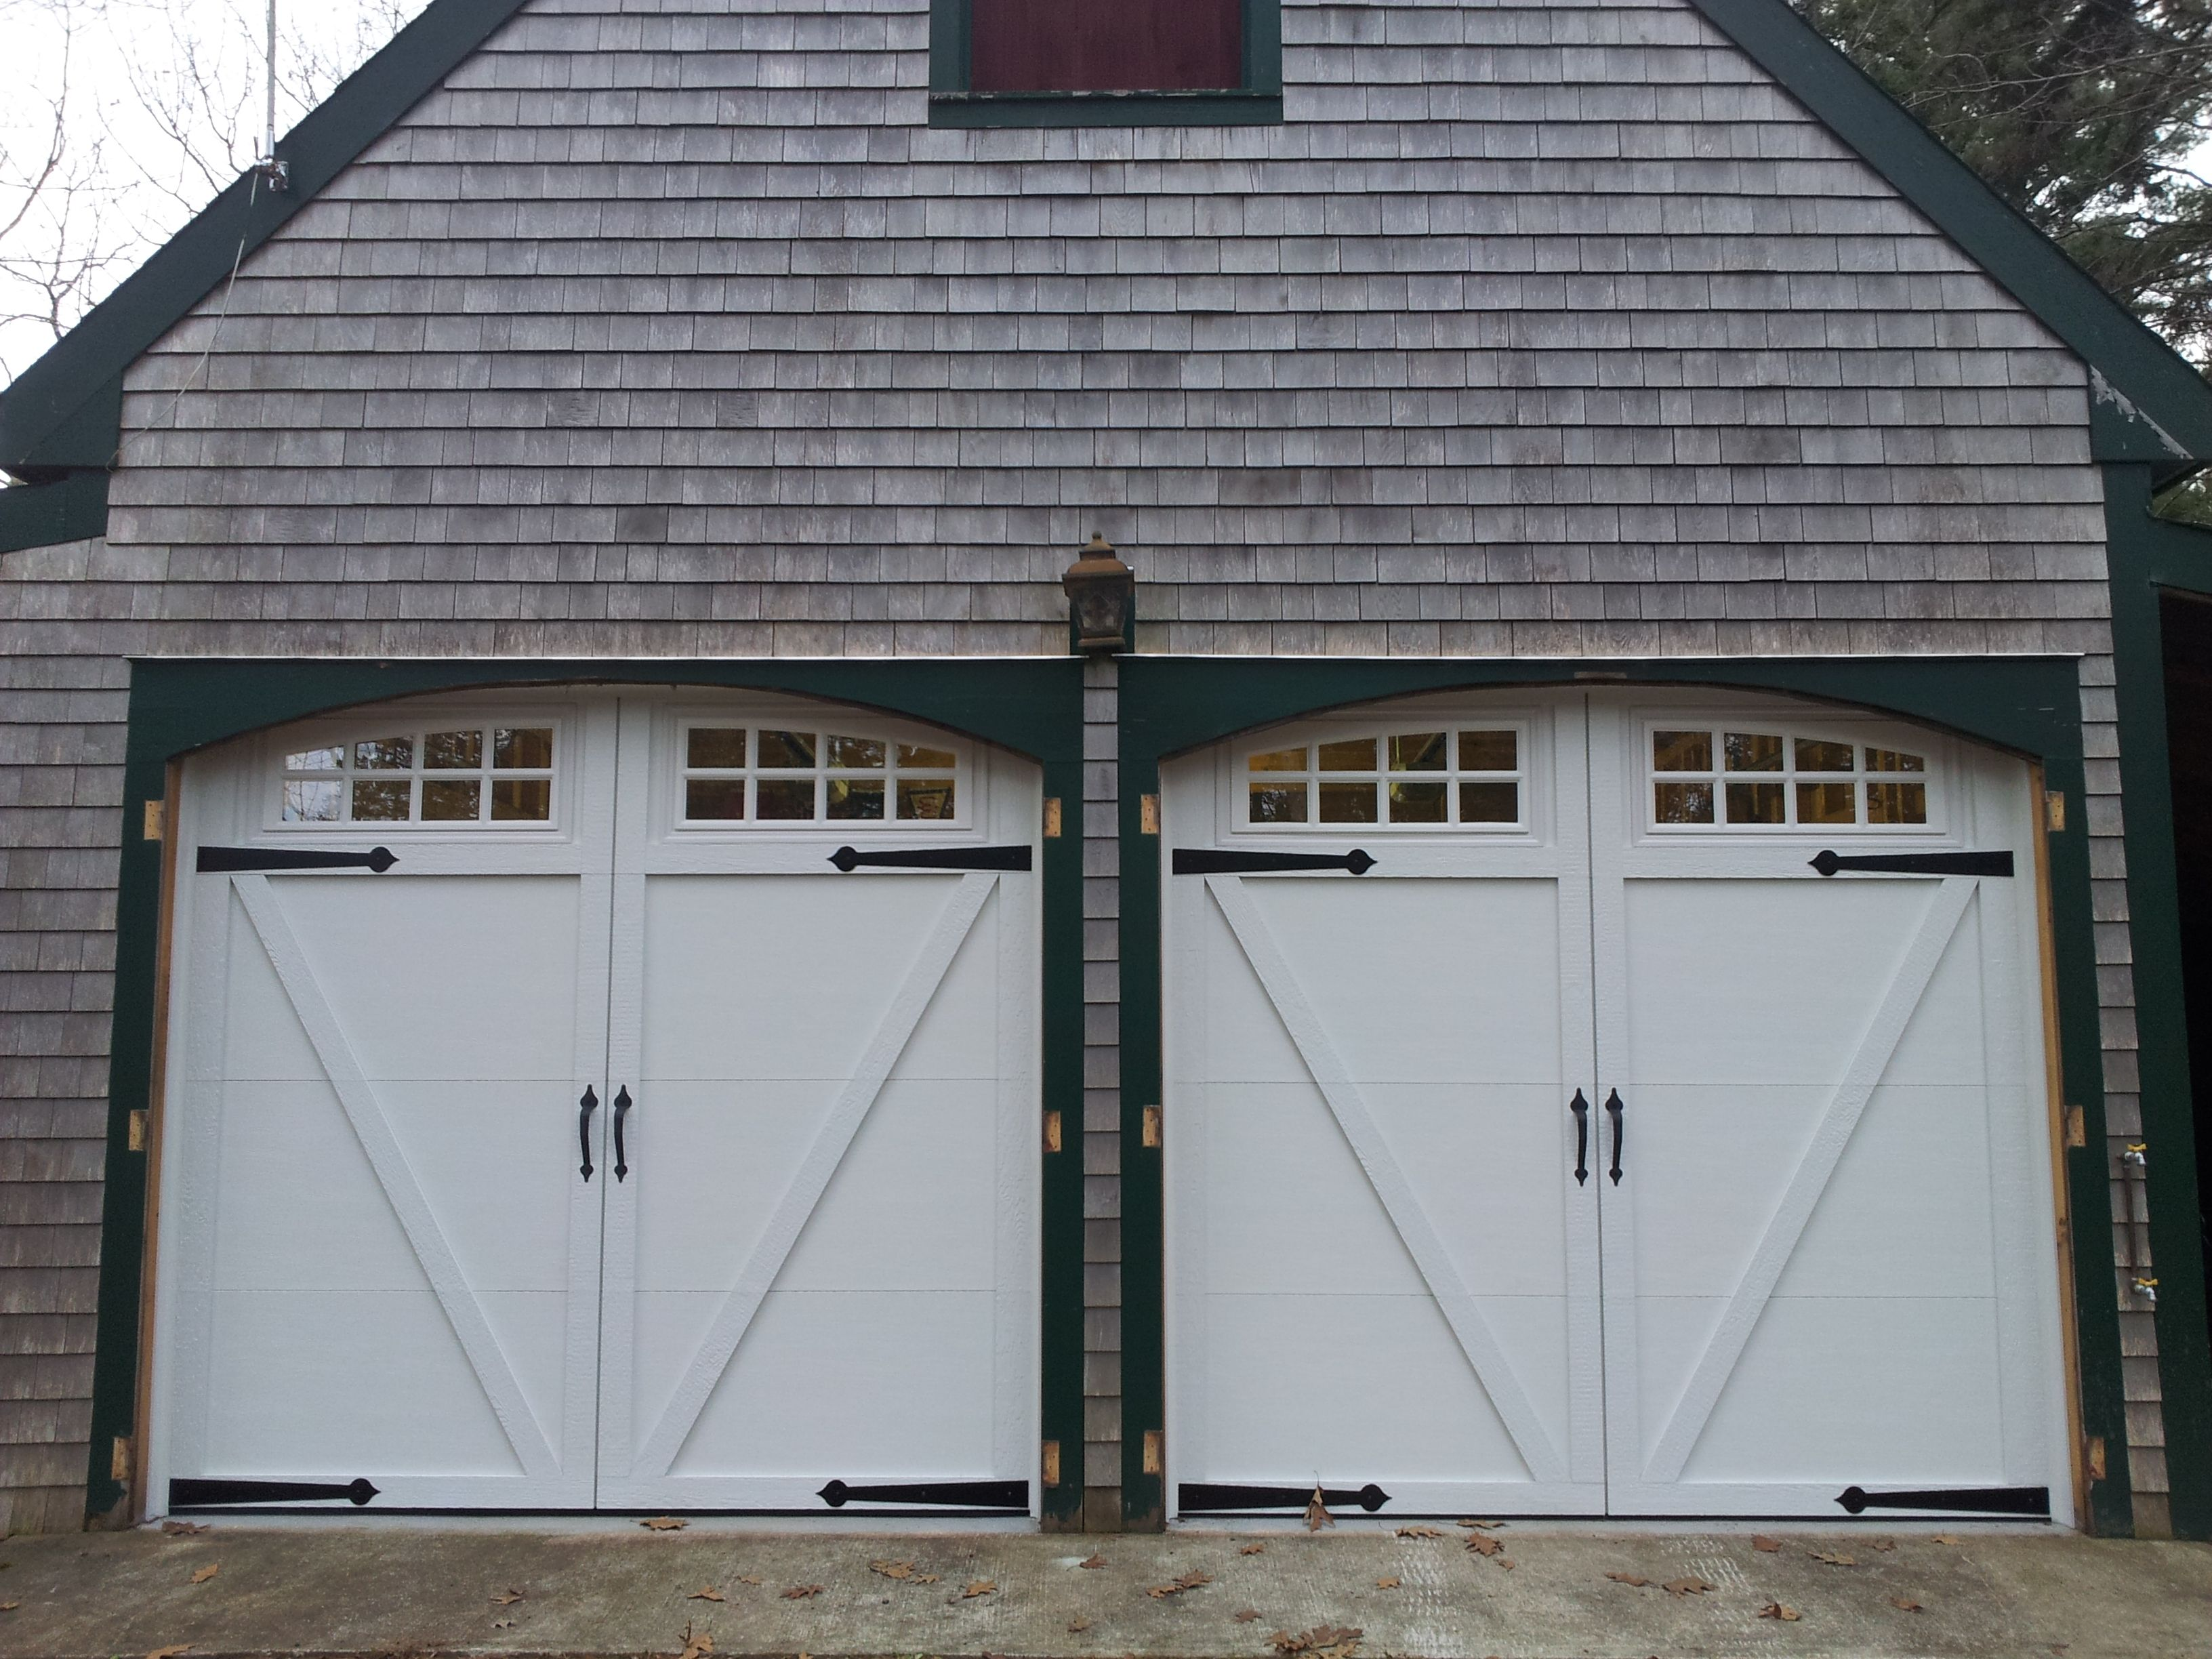 Model 169 Insulated Carriage Style Door Painted White With 1 2 Insulated Glass Somerton Garage Door Styles Carriage Style Garage Doors Garage Door Colors